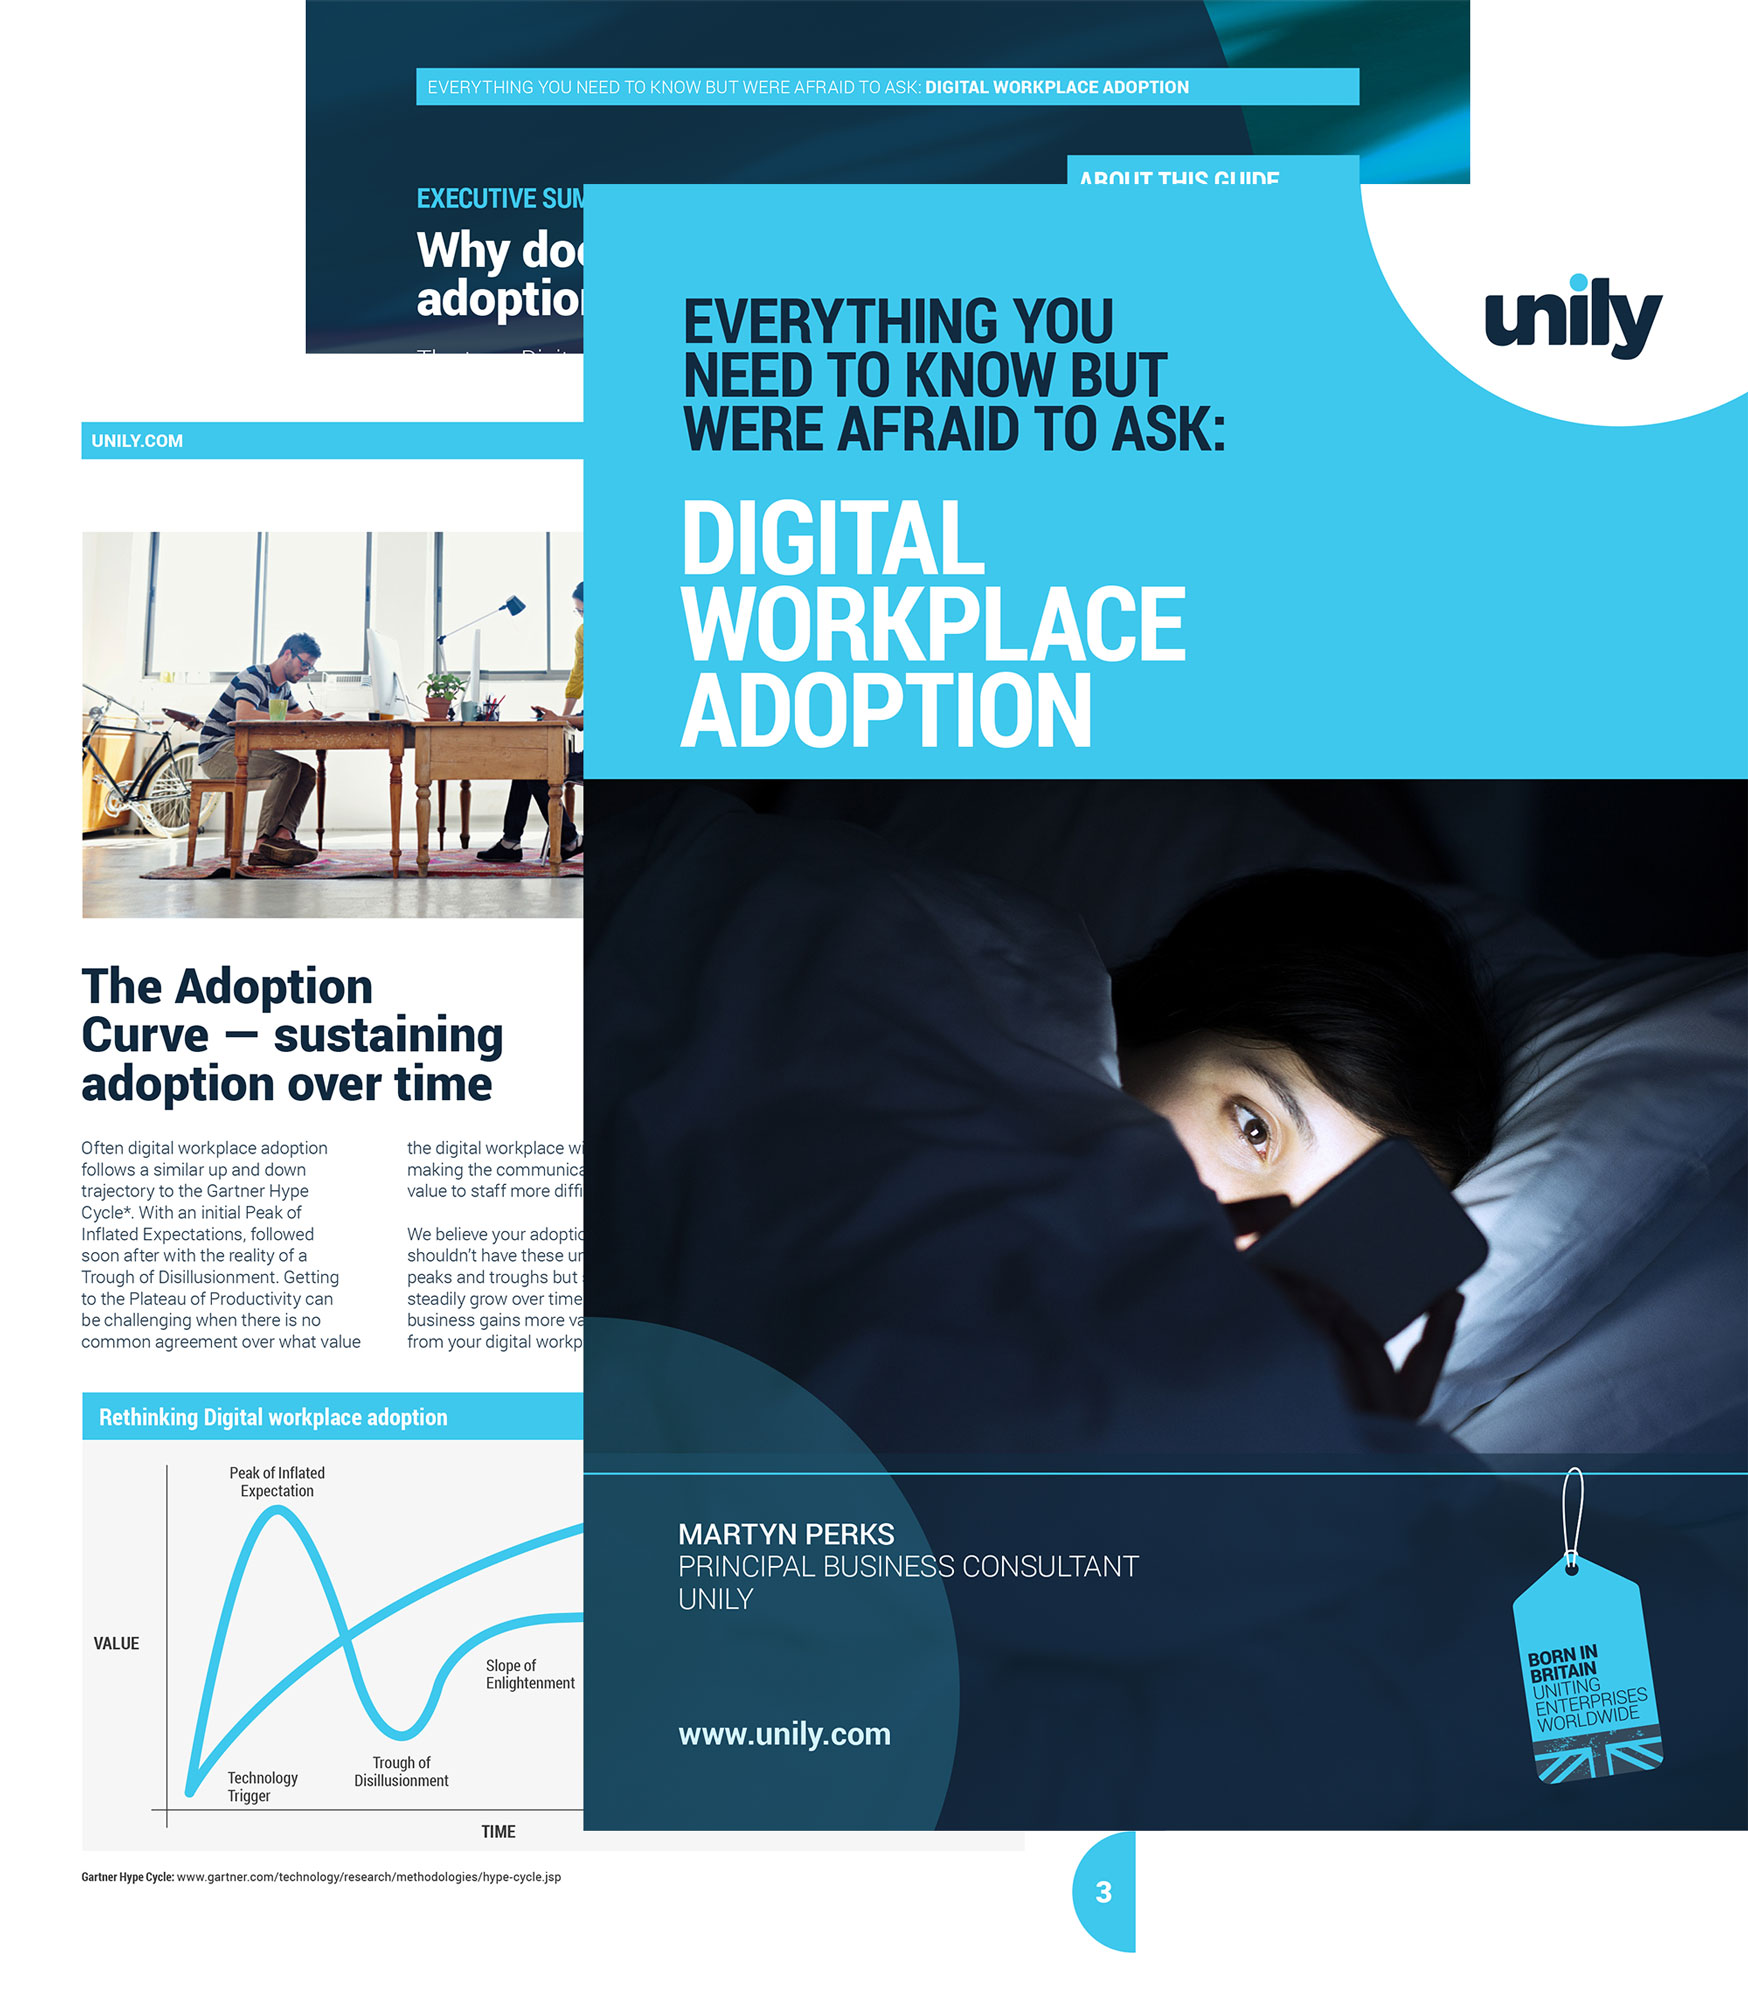 Digital workplace adoption guide cover